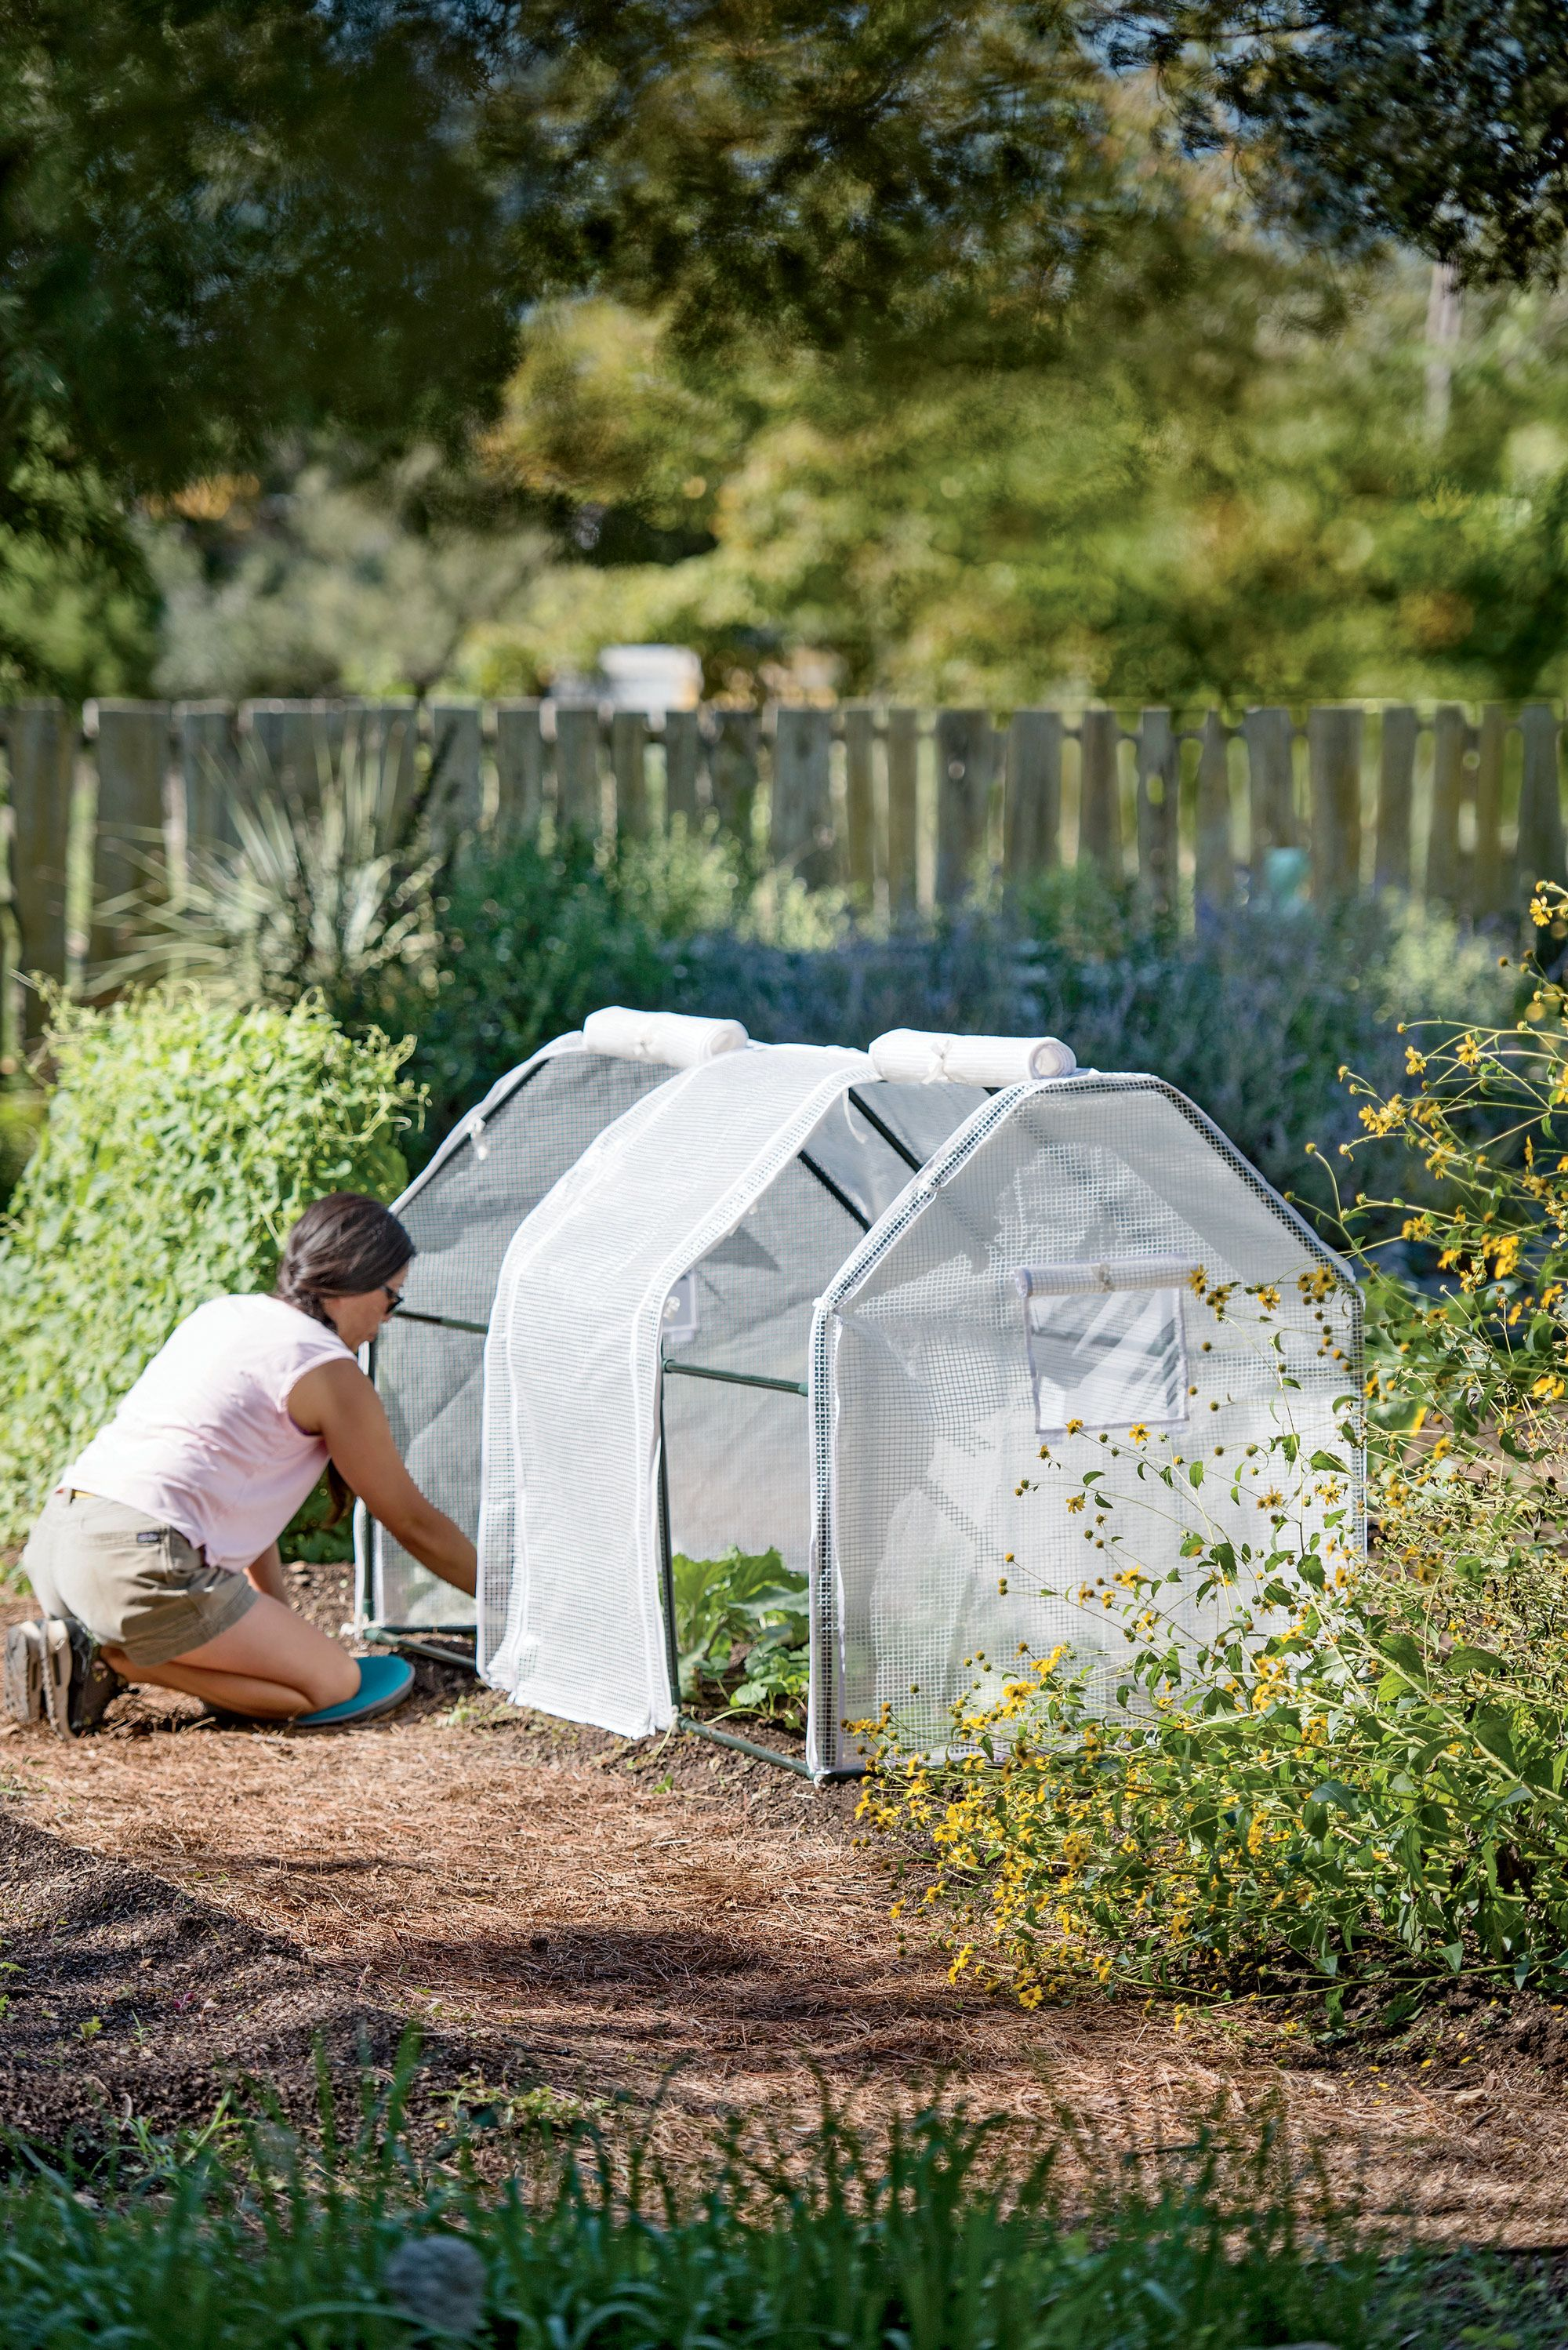 3 Season Garden Protection Tent 4 X8 Raised Bed Cover